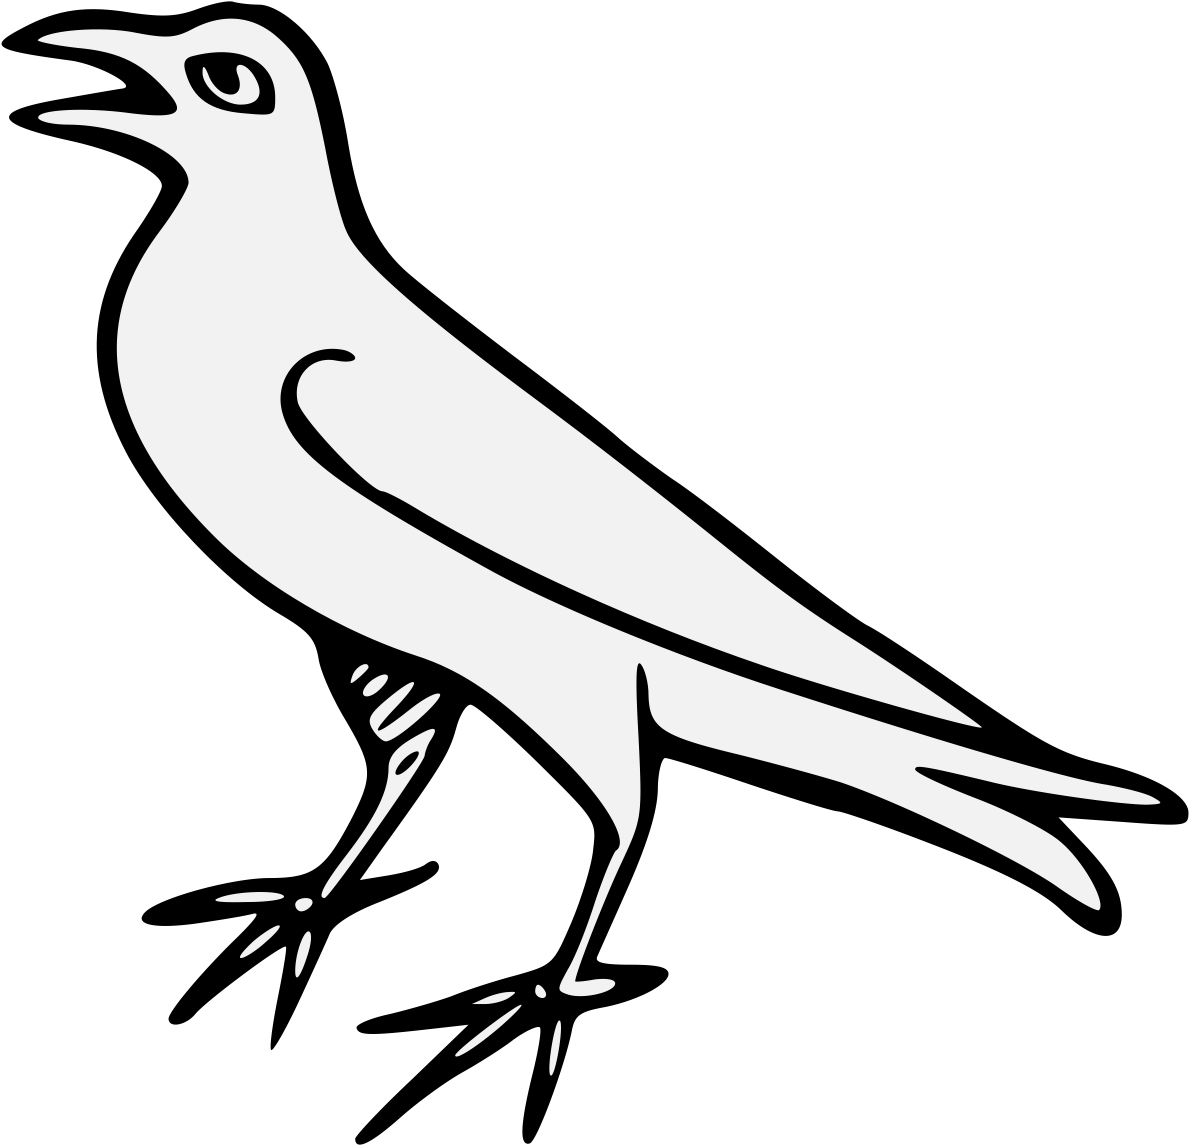 Bird Wing Png Bird Sketch 4174571 Vippng